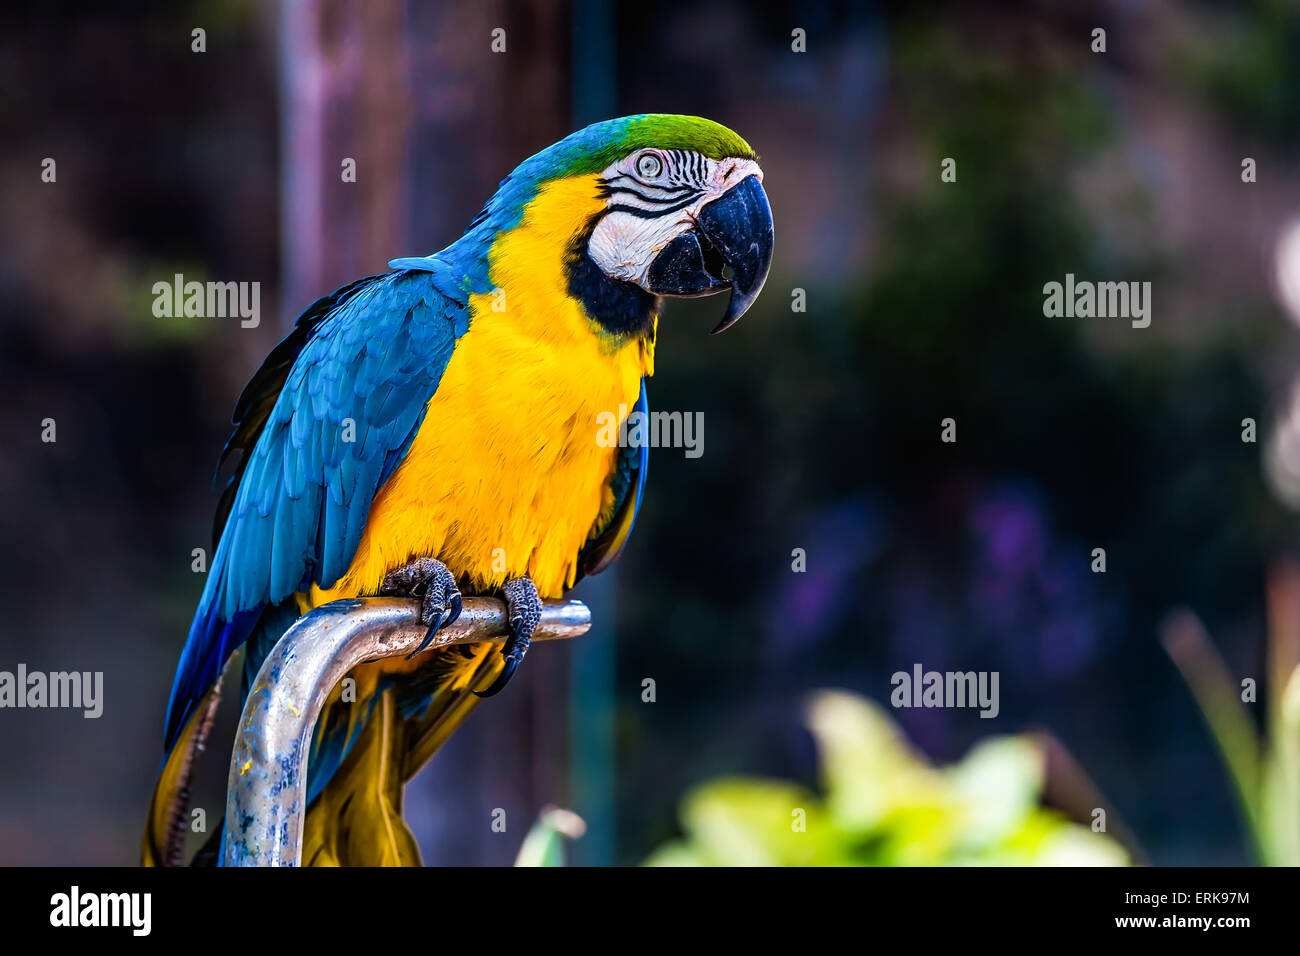 Blue and Gold or yellow Macaw parrot siting on metal perch in zoo - Stock Image